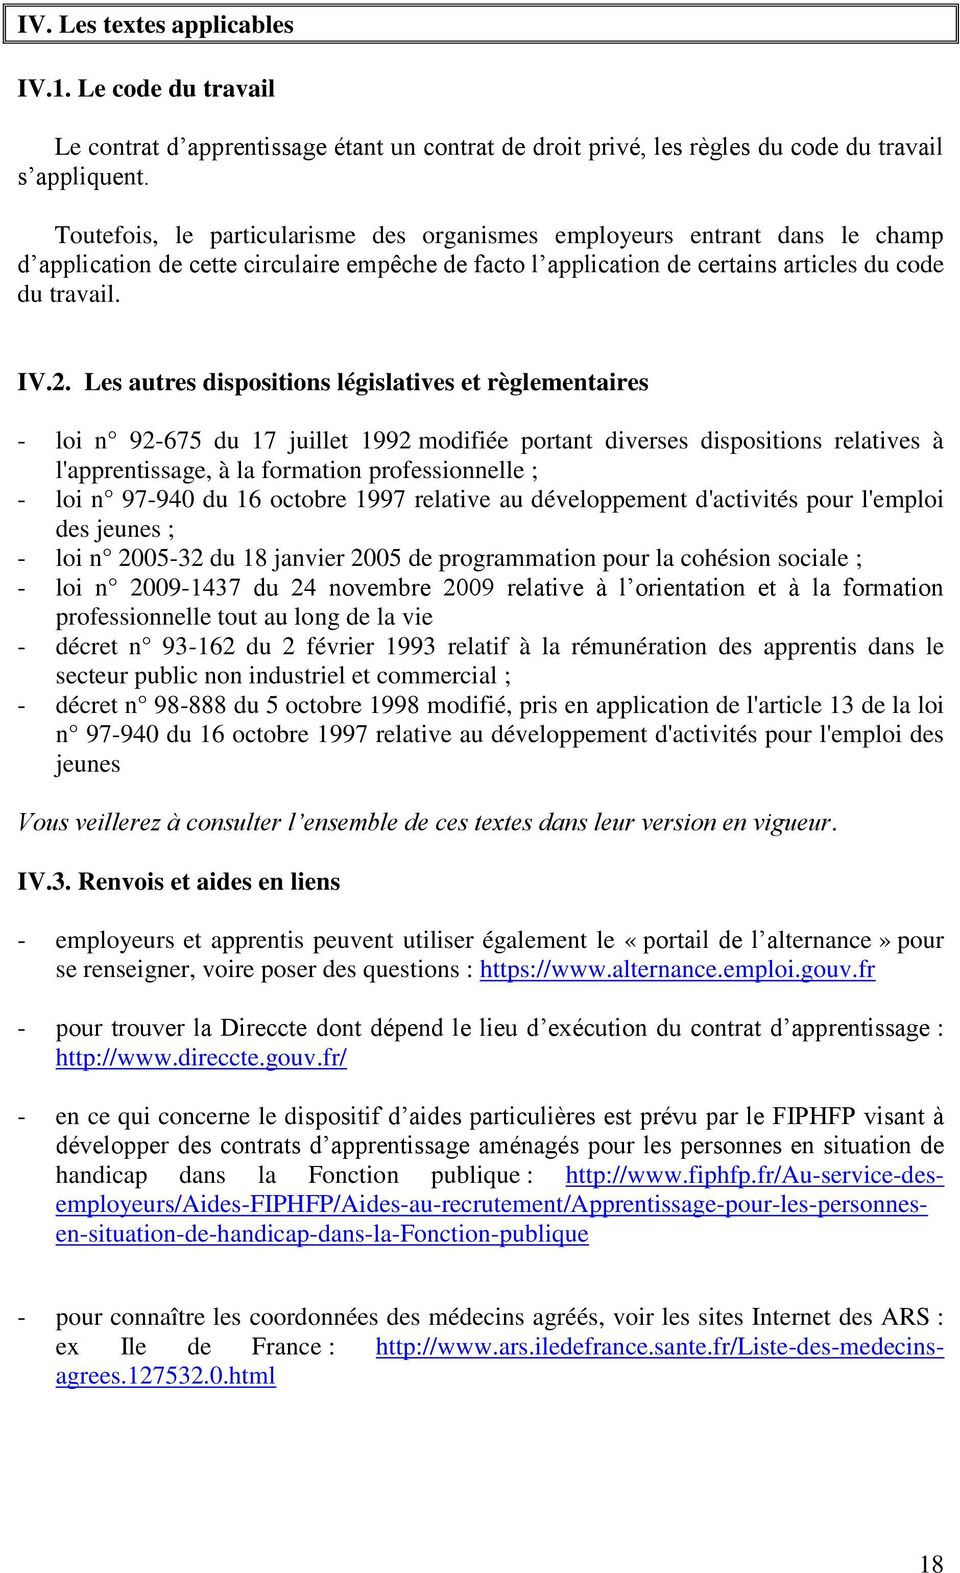 Les autres dispositions législatives et règlementaires - loi n 92-675 du 17 juillet 1992 modifiée portant diverses dispositions relatives à l'apprentissage, à la formation professionnelle ; - loi n